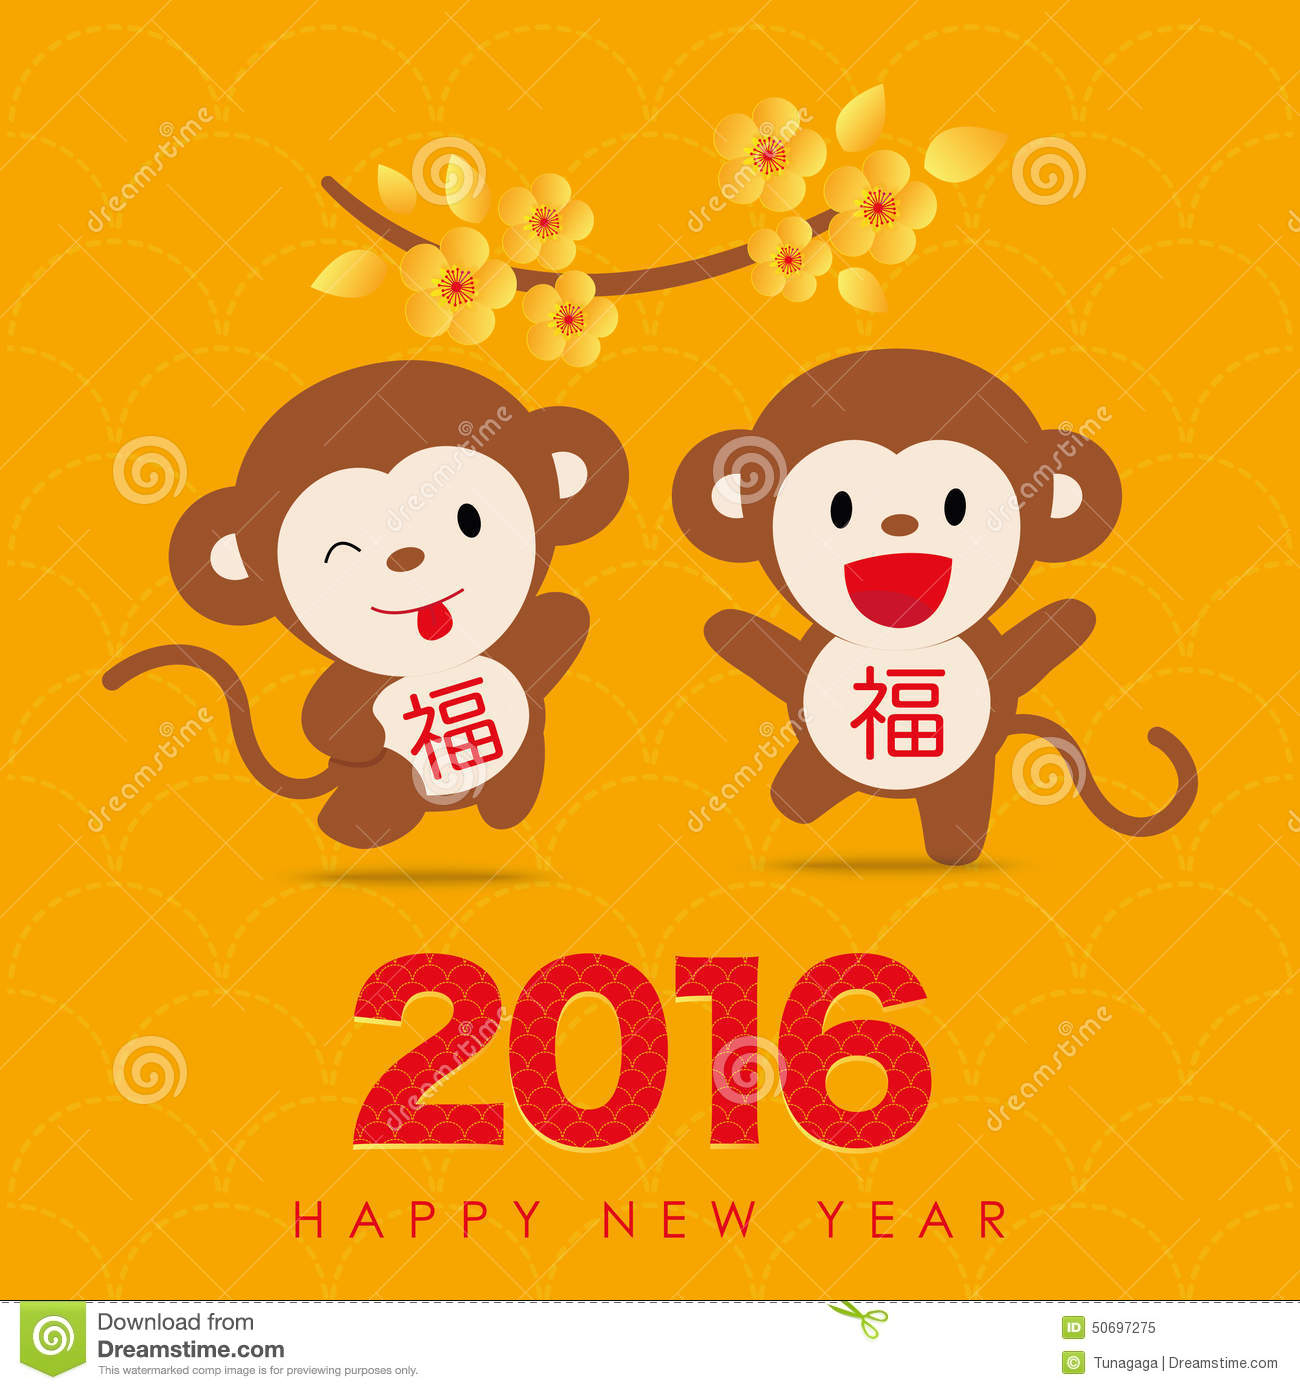 2016 monkey chinese new year greeting card design stock vector download 2016 monkey chinese new year greeting card design stock vector illustration of card m4hsunfo